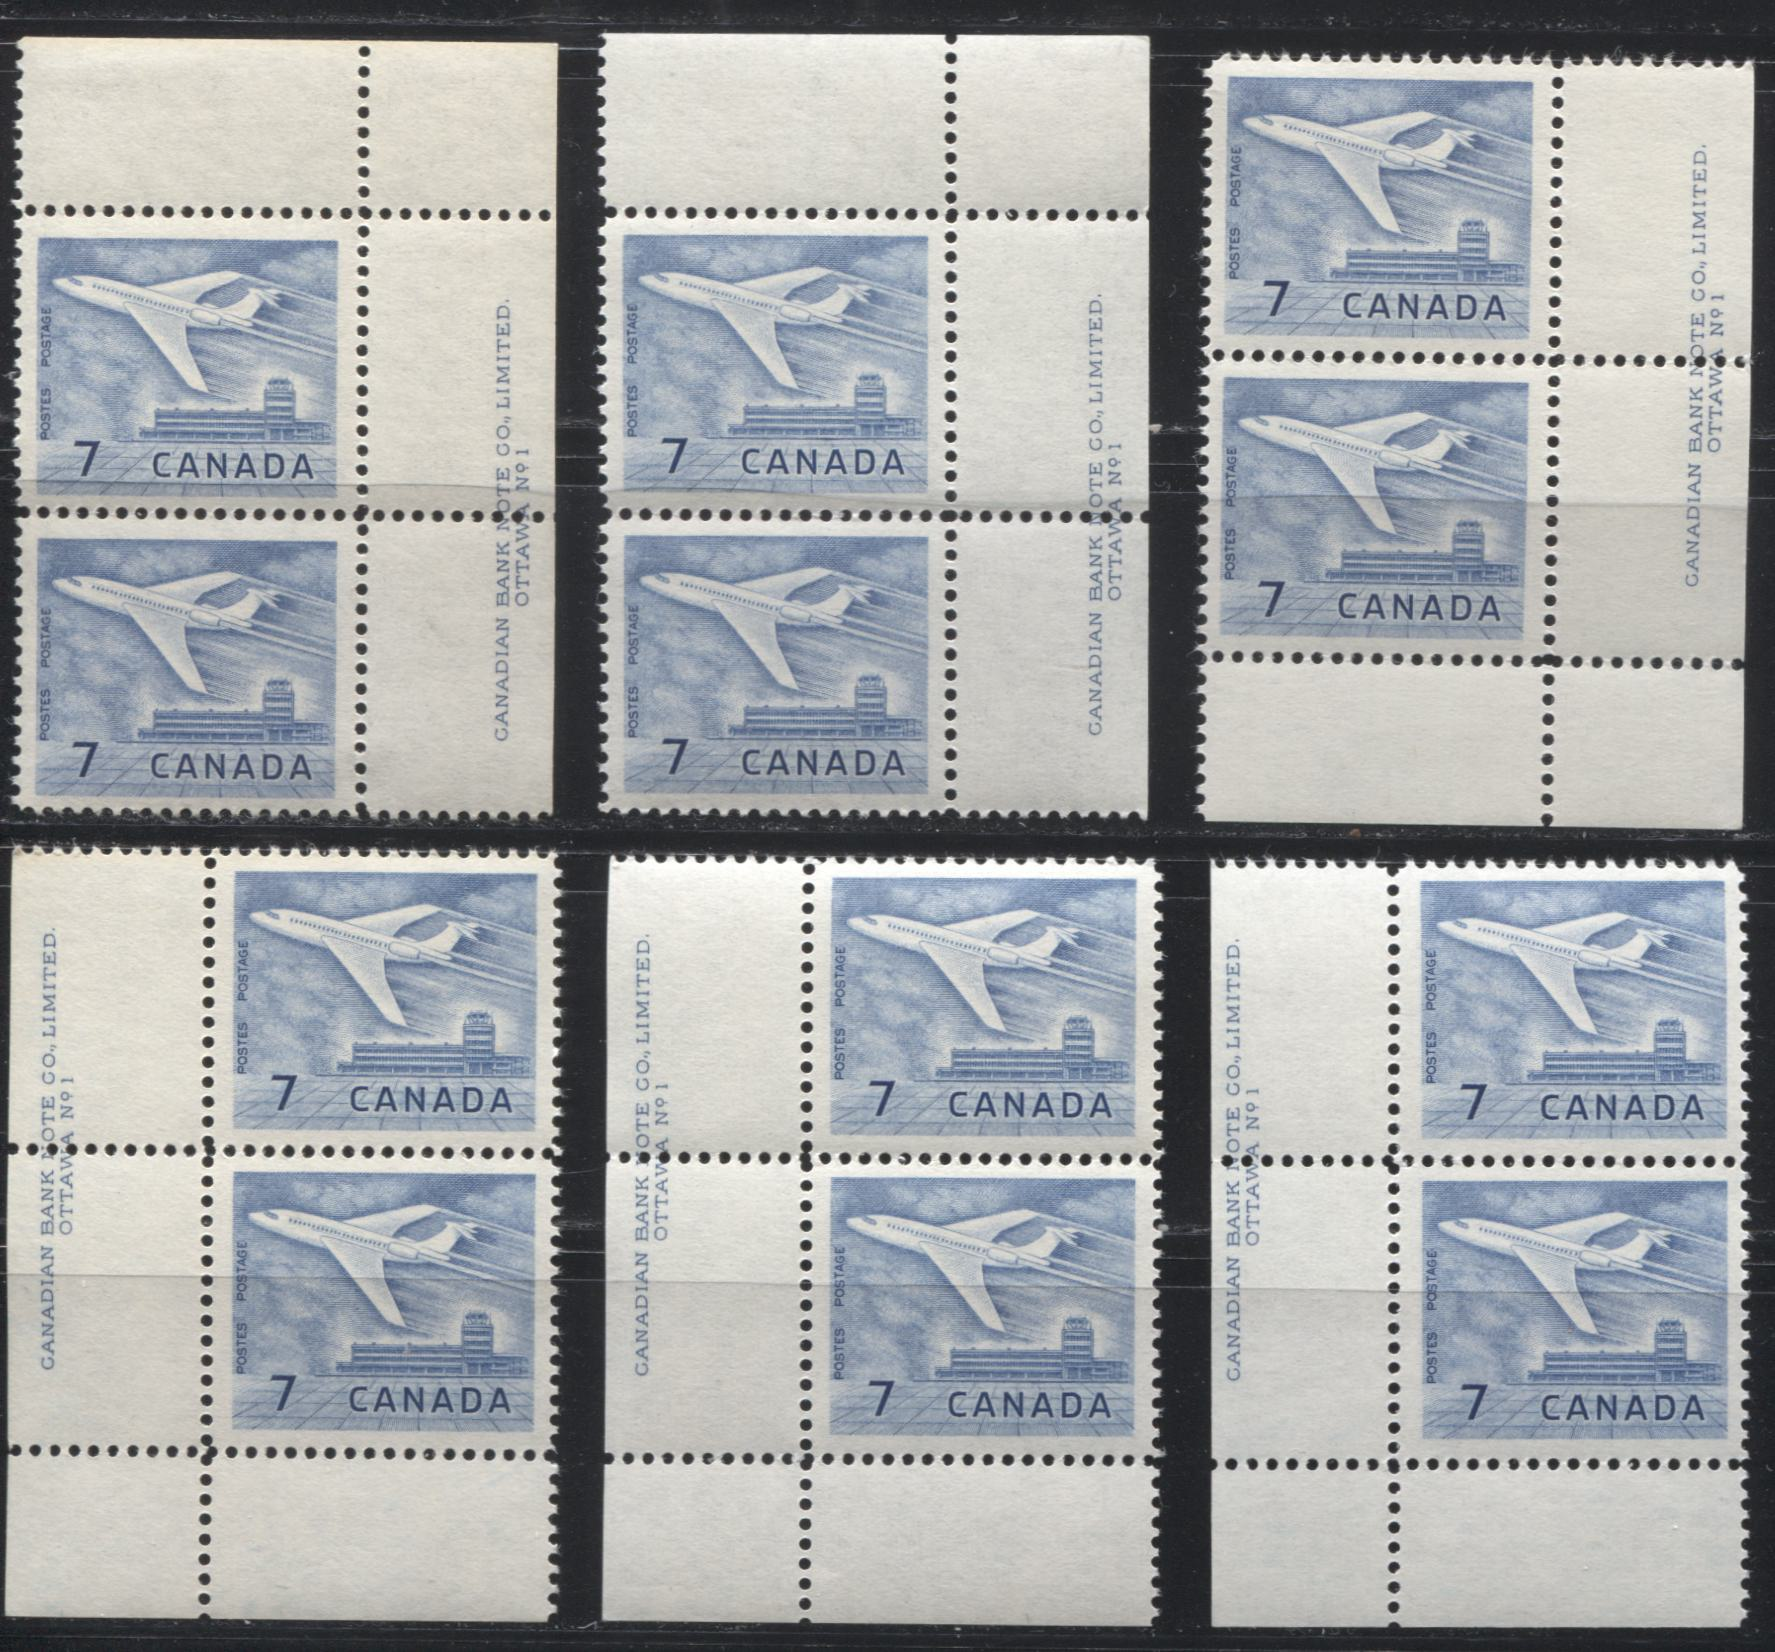 Canada #414 7c Dull Blue Jet Plane, 1962-1967 Cameo Issue, Specialized Lot of 6 VFNH Plate 1 Inscription Pairs, Different Papers, and Perfs